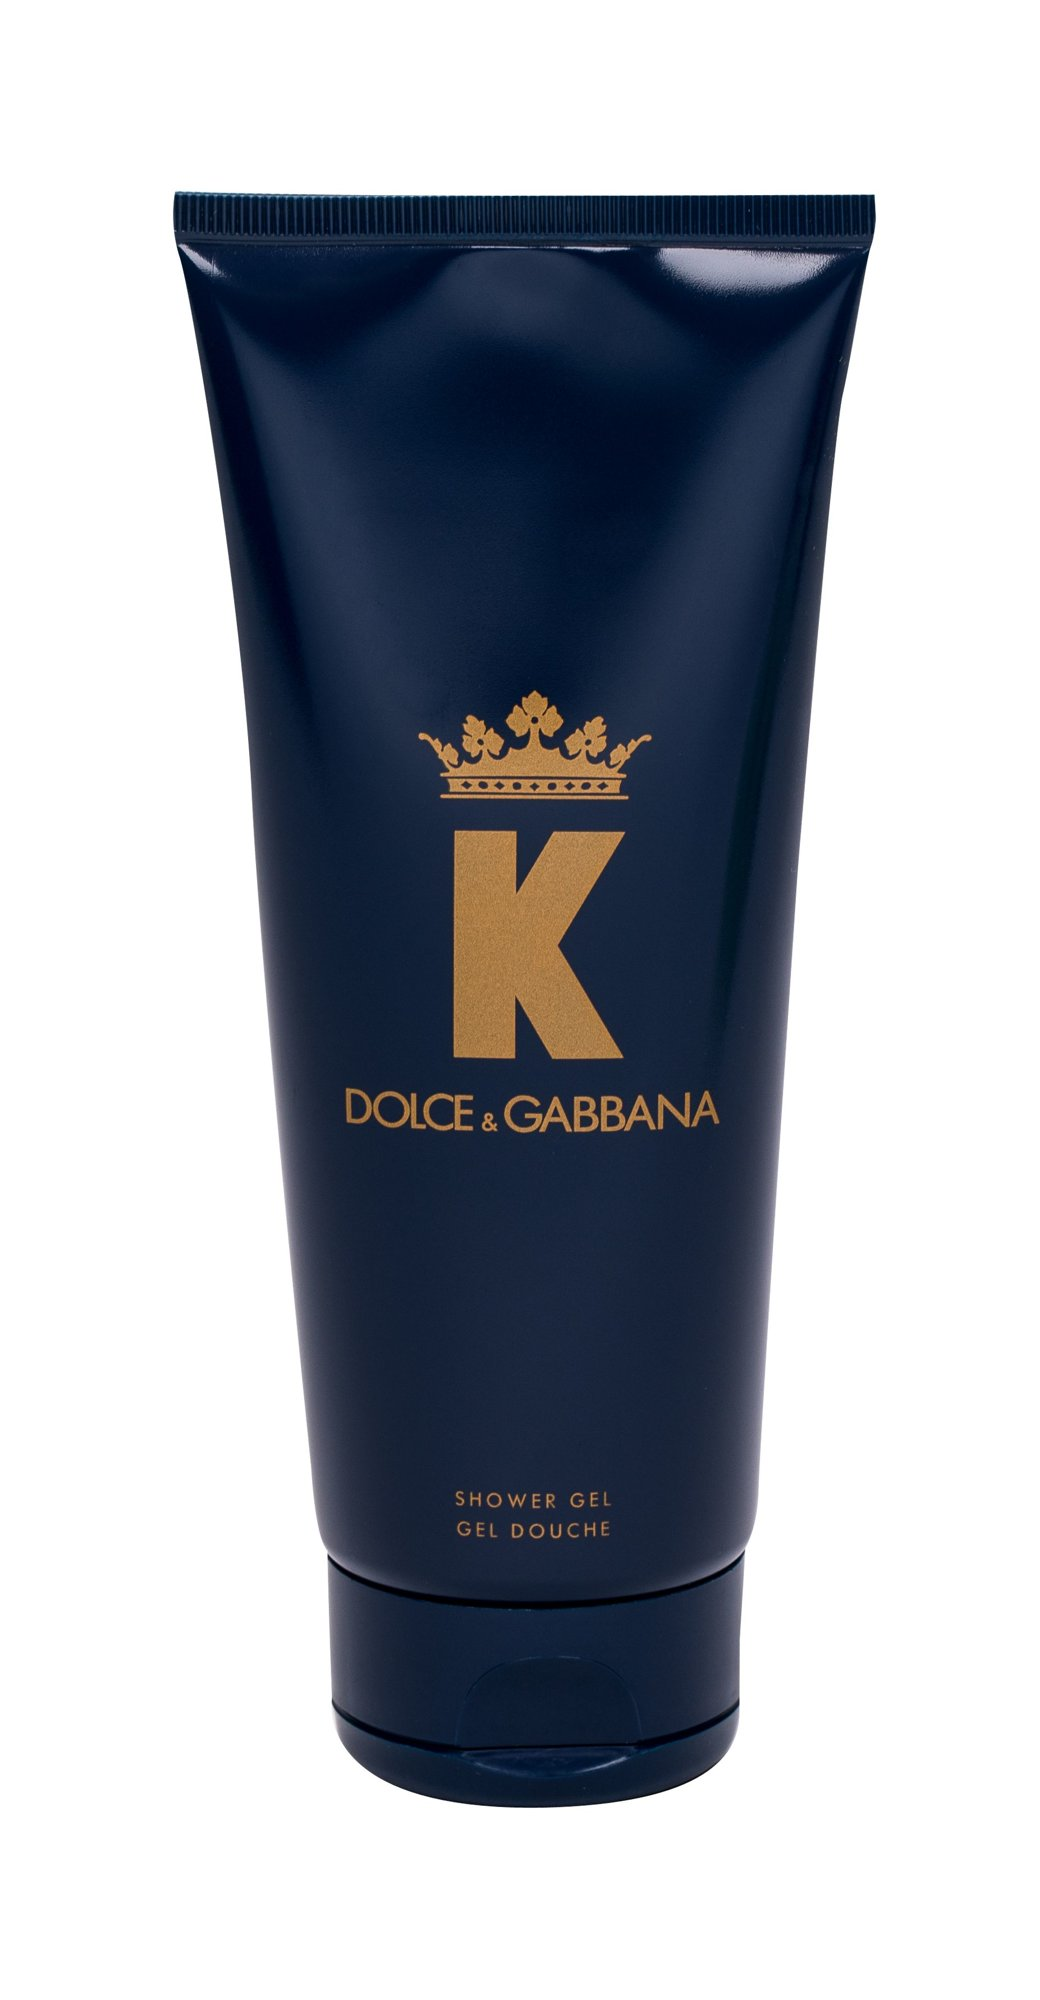 Dolce&Gabbana K Shower Gel 200ml